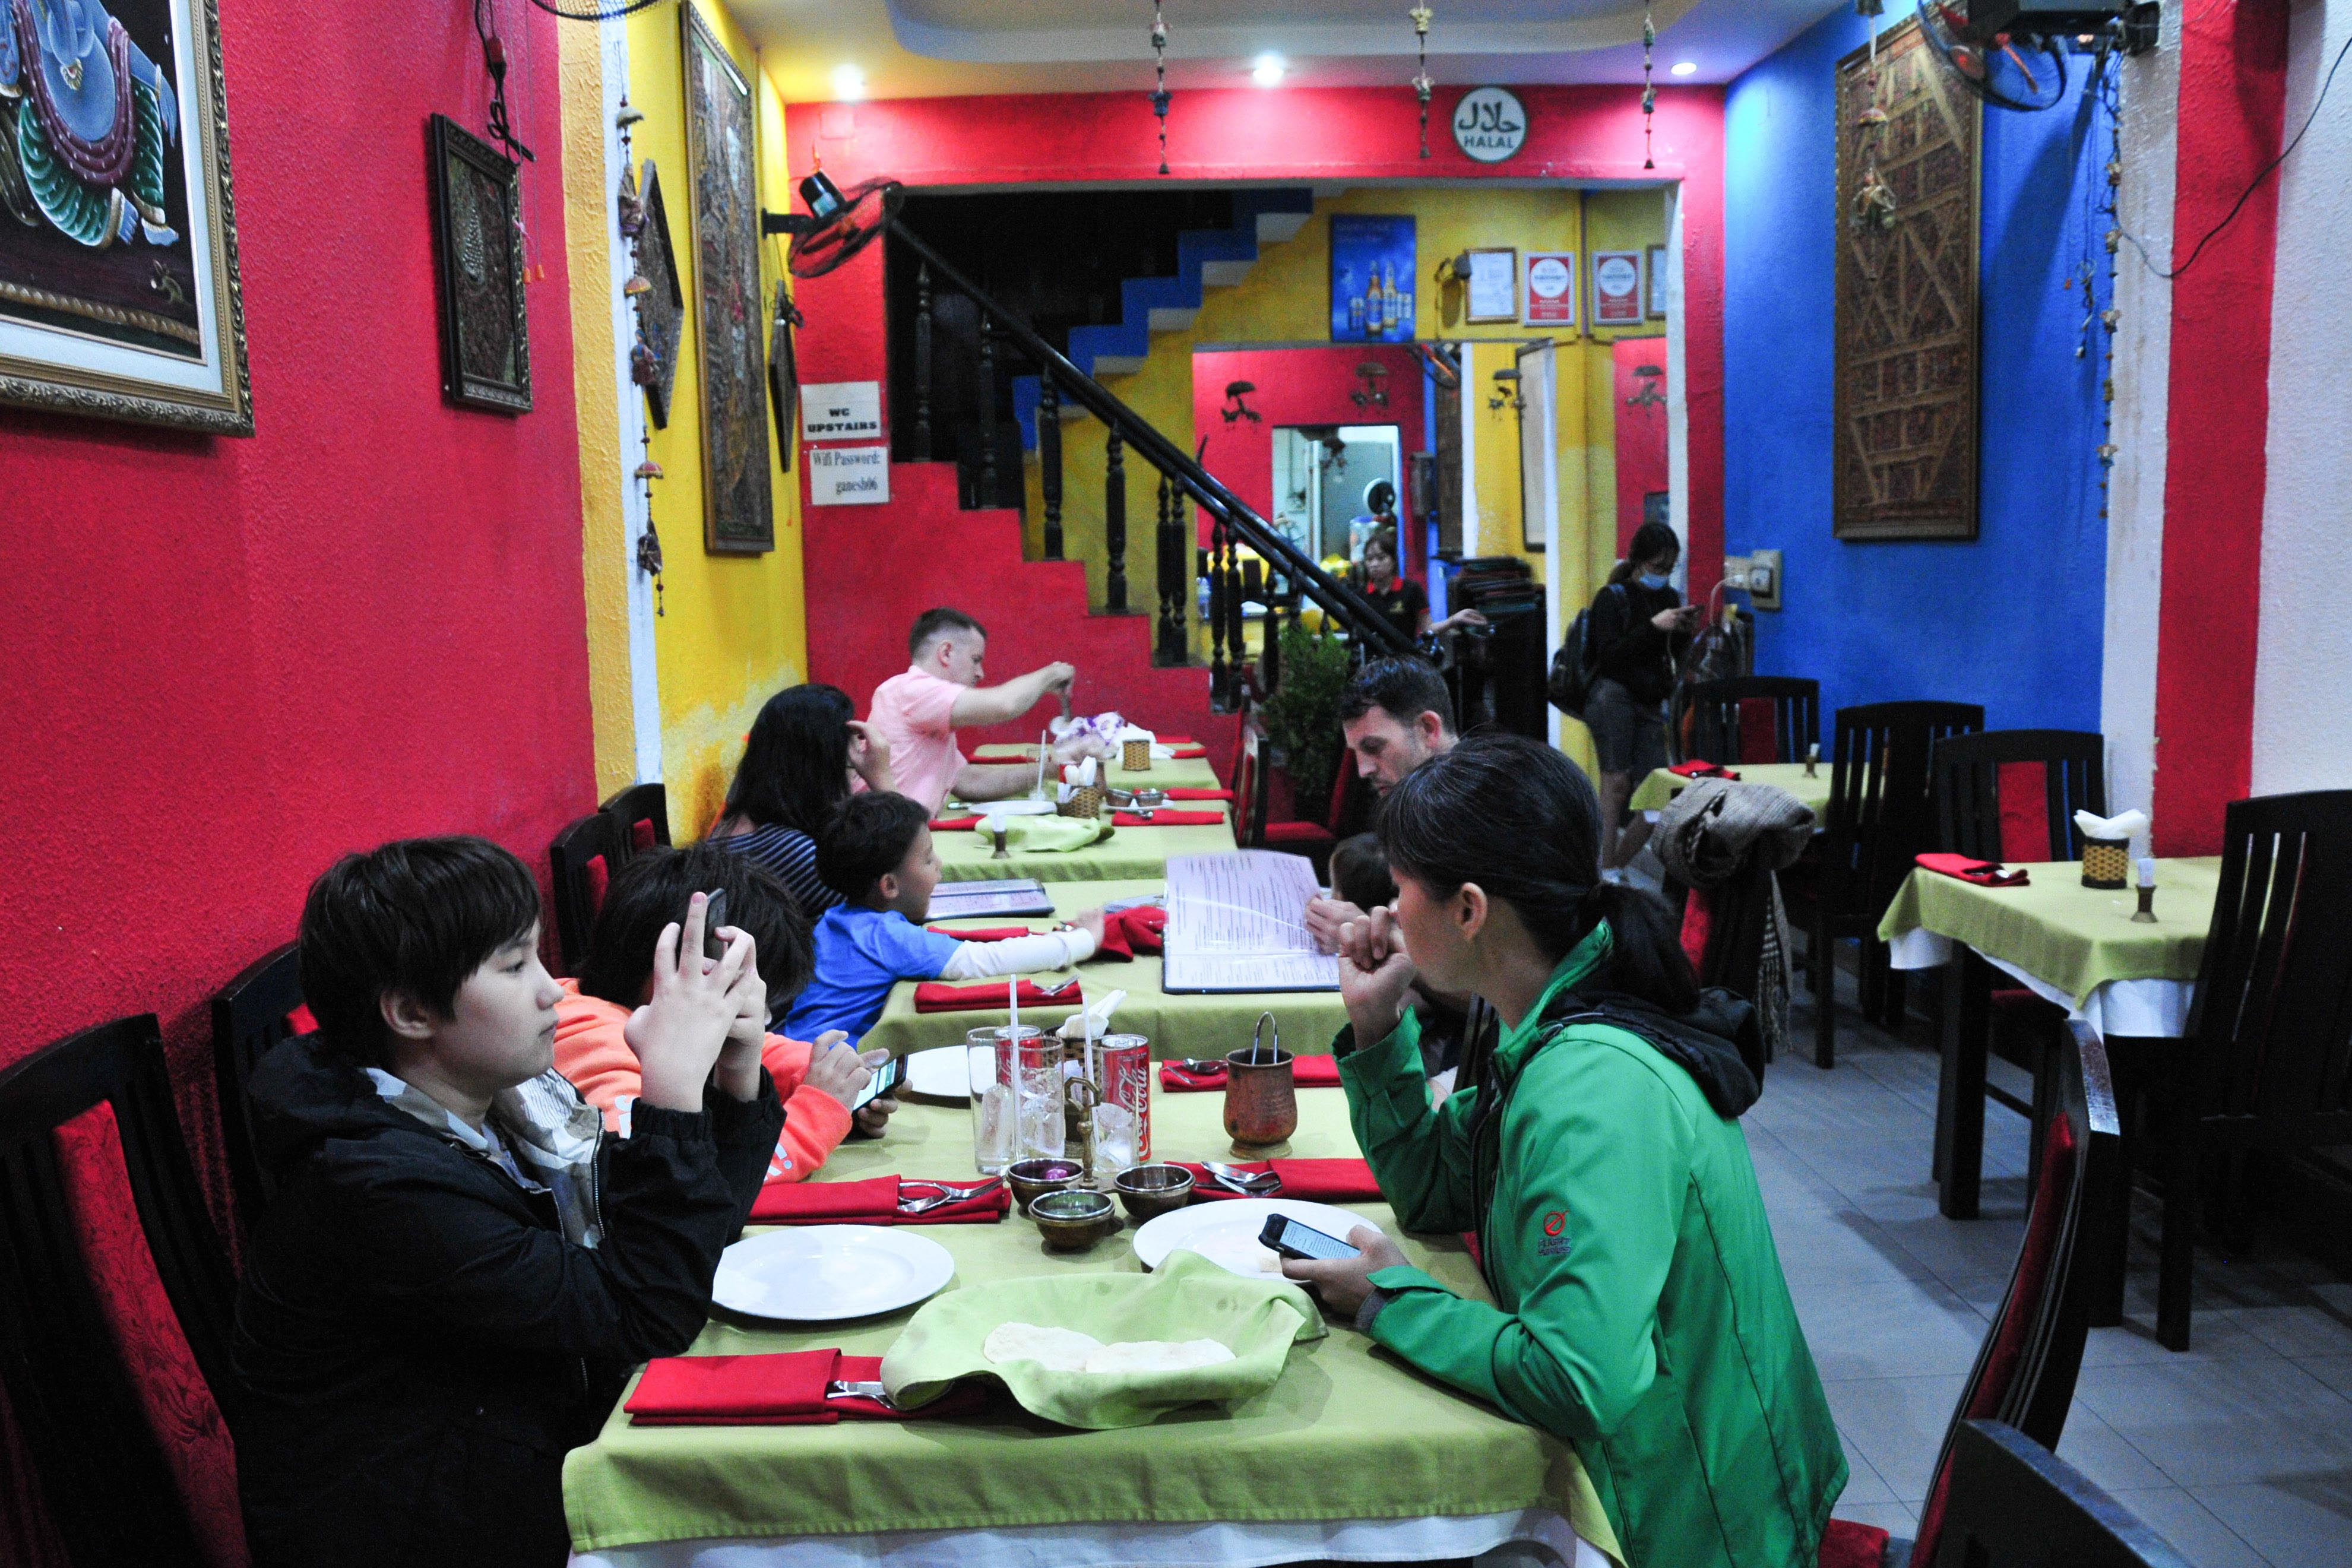 People having meal at a restaurant